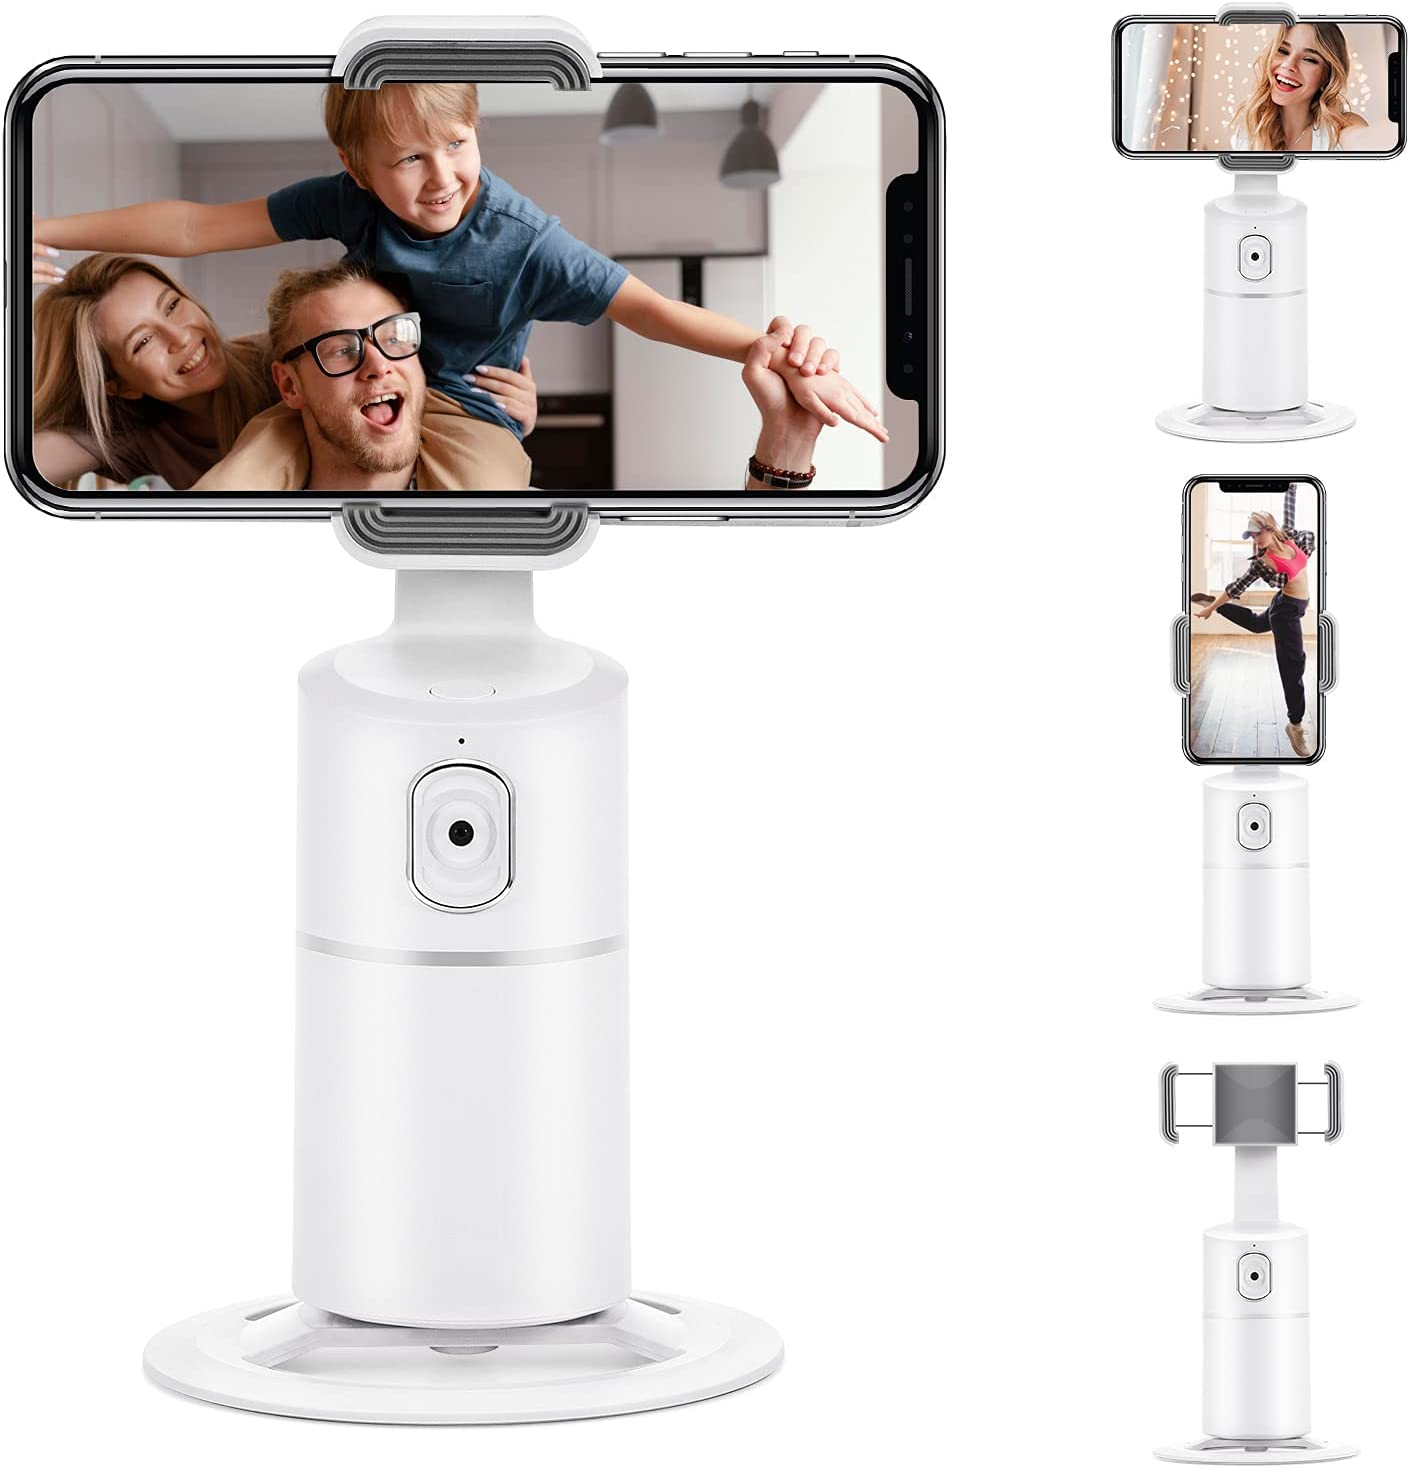 Auto Tracking Tripod Face 360 Phon Max 52% OFF Phone Holder Sale price